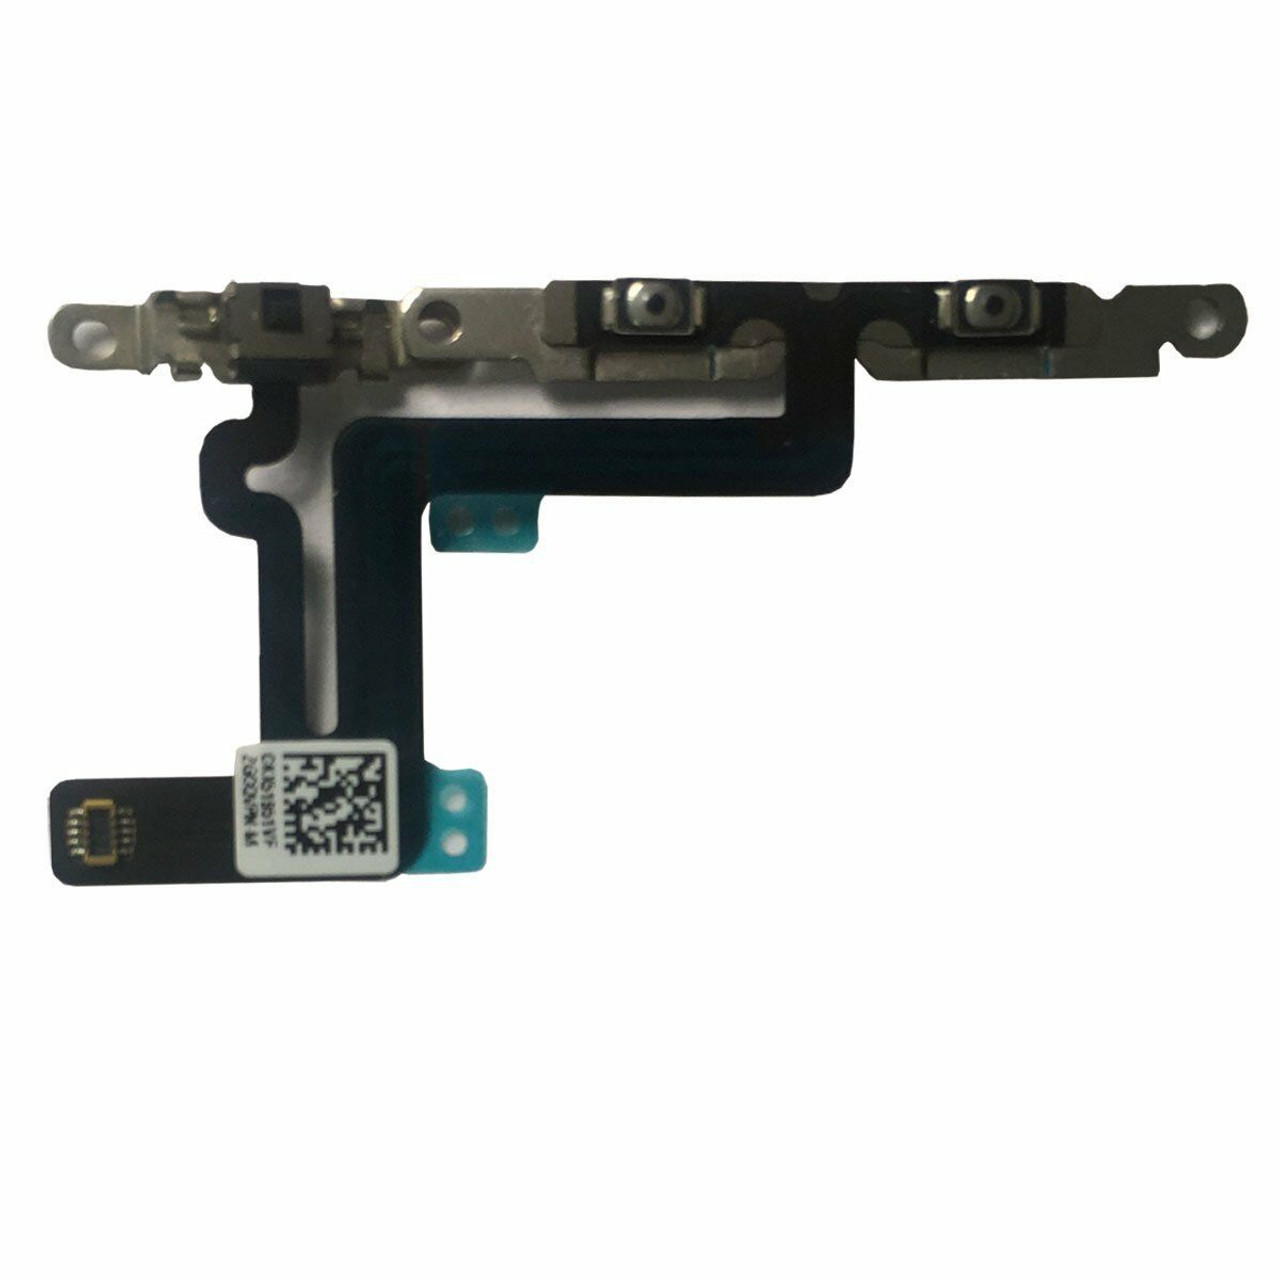 OEM SPEC Volume Button Mute Silent Switch Cable Metal Bracket For iPhone 6 Plus